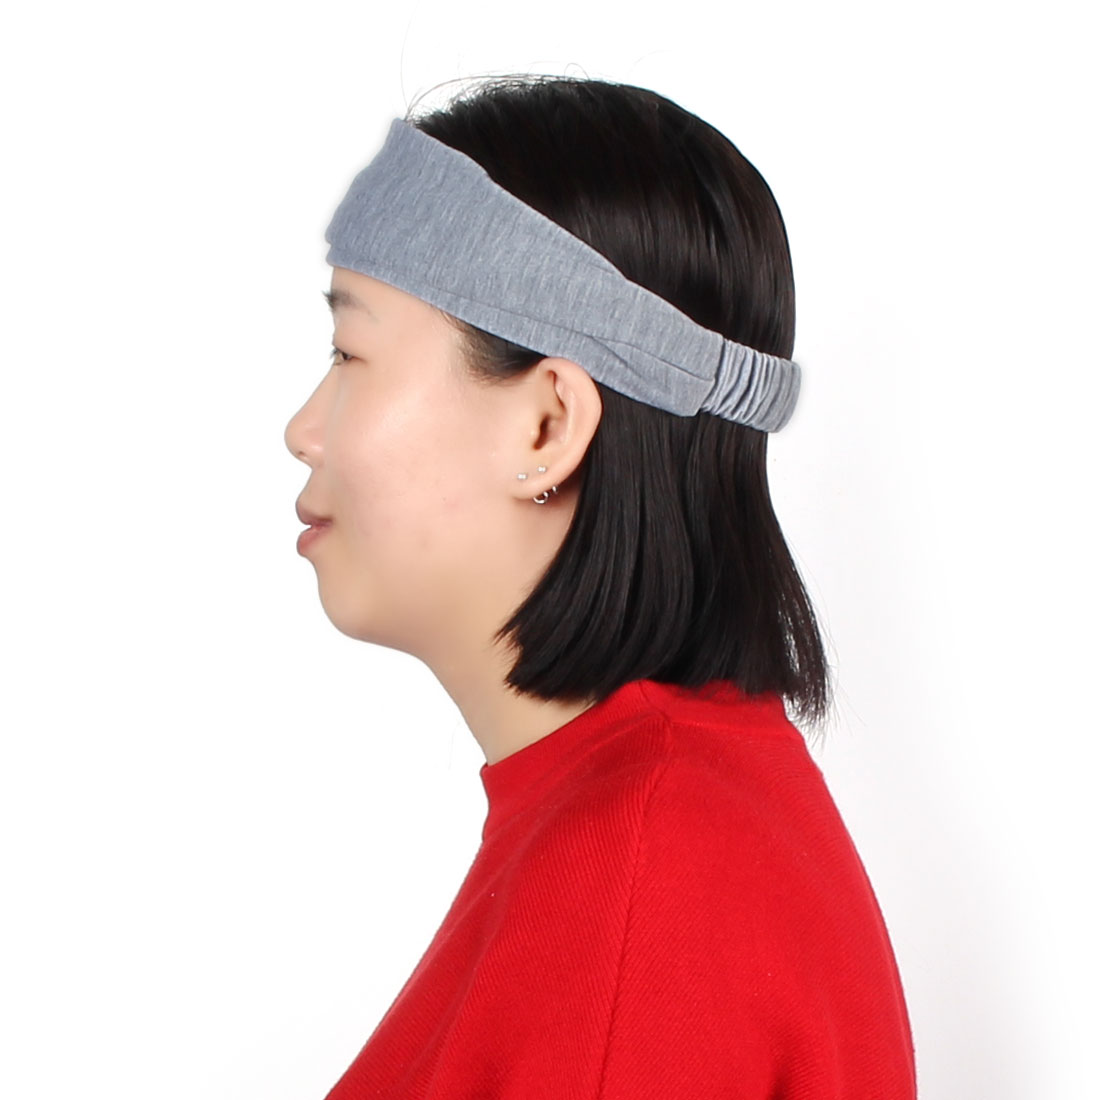 Outdoor Running Sports Cotton Blends Elastic Headwraps Headband Hair Band Gray - image 4 de 5